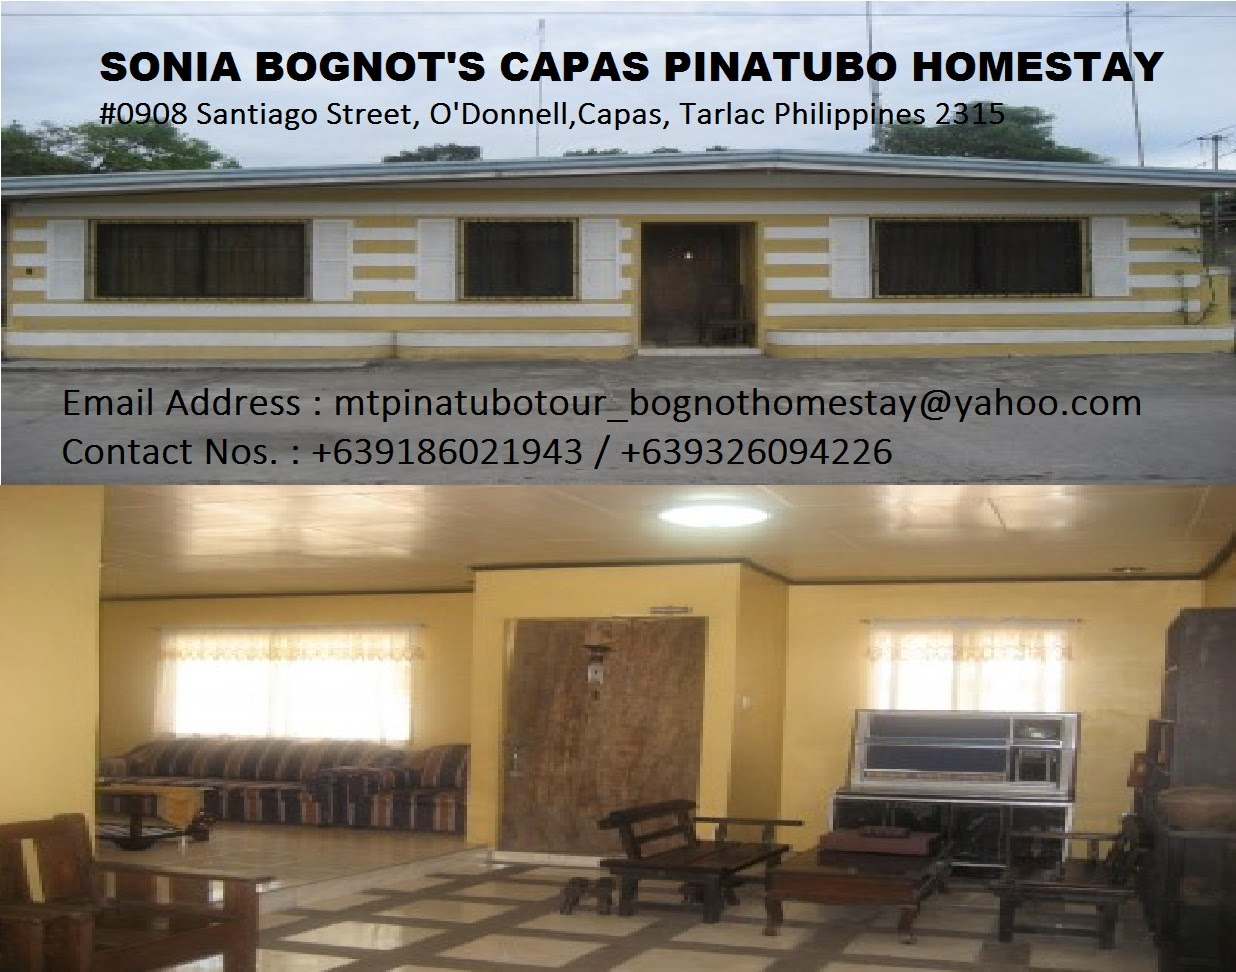 https://mtpinatubotourhomestayphilippines.wordpress.com/facilities-homestay-pinatubo/